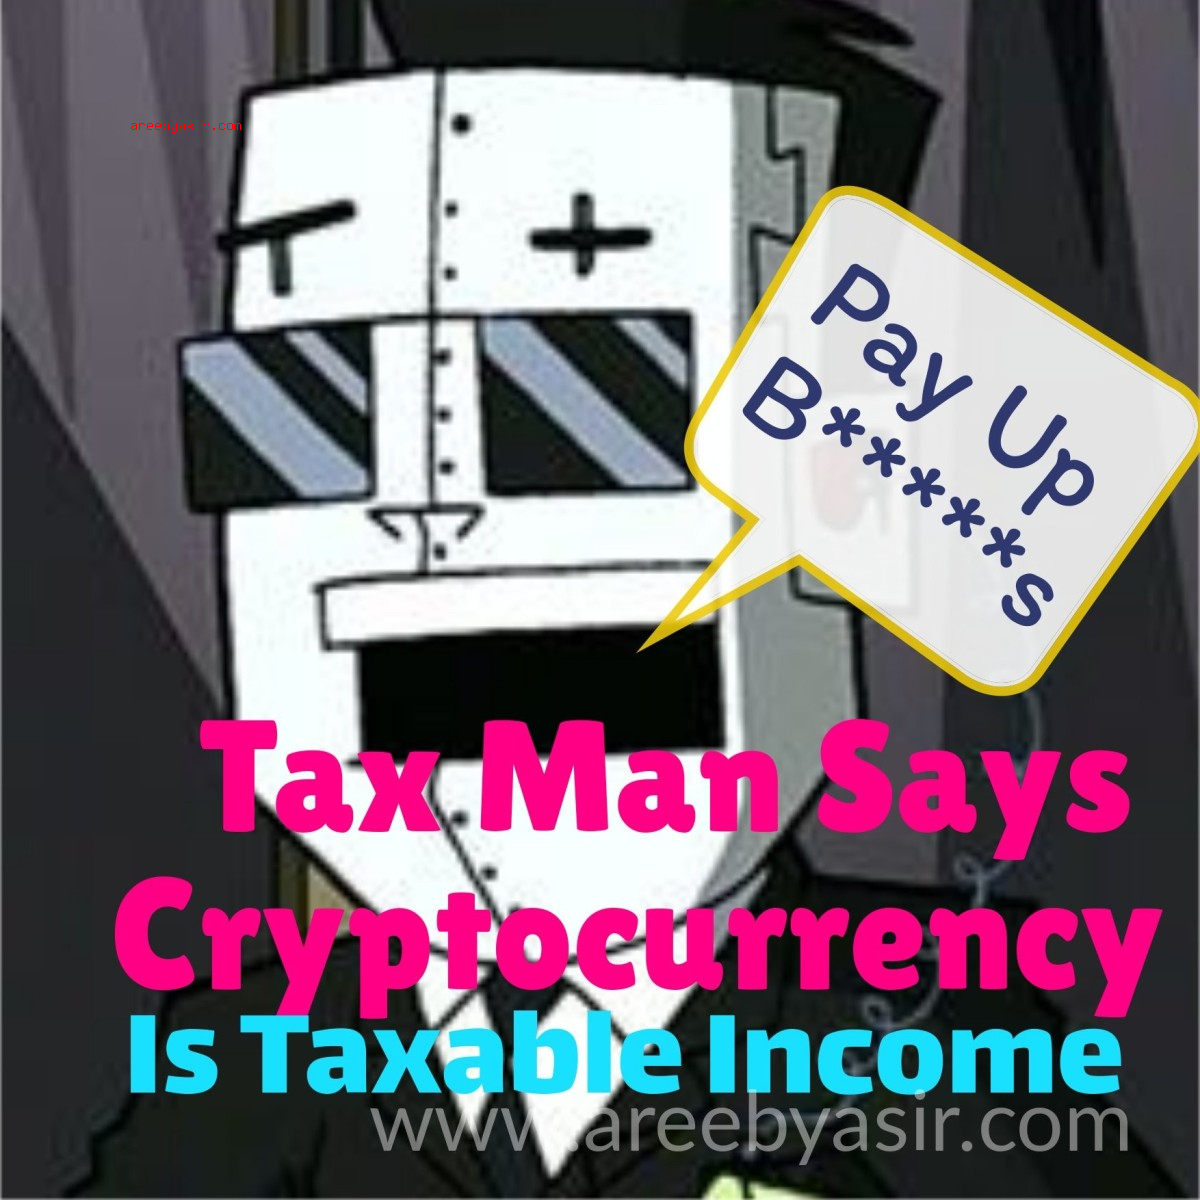 IRS / US Taxman Says Cryptocurrency Income IS Taxable